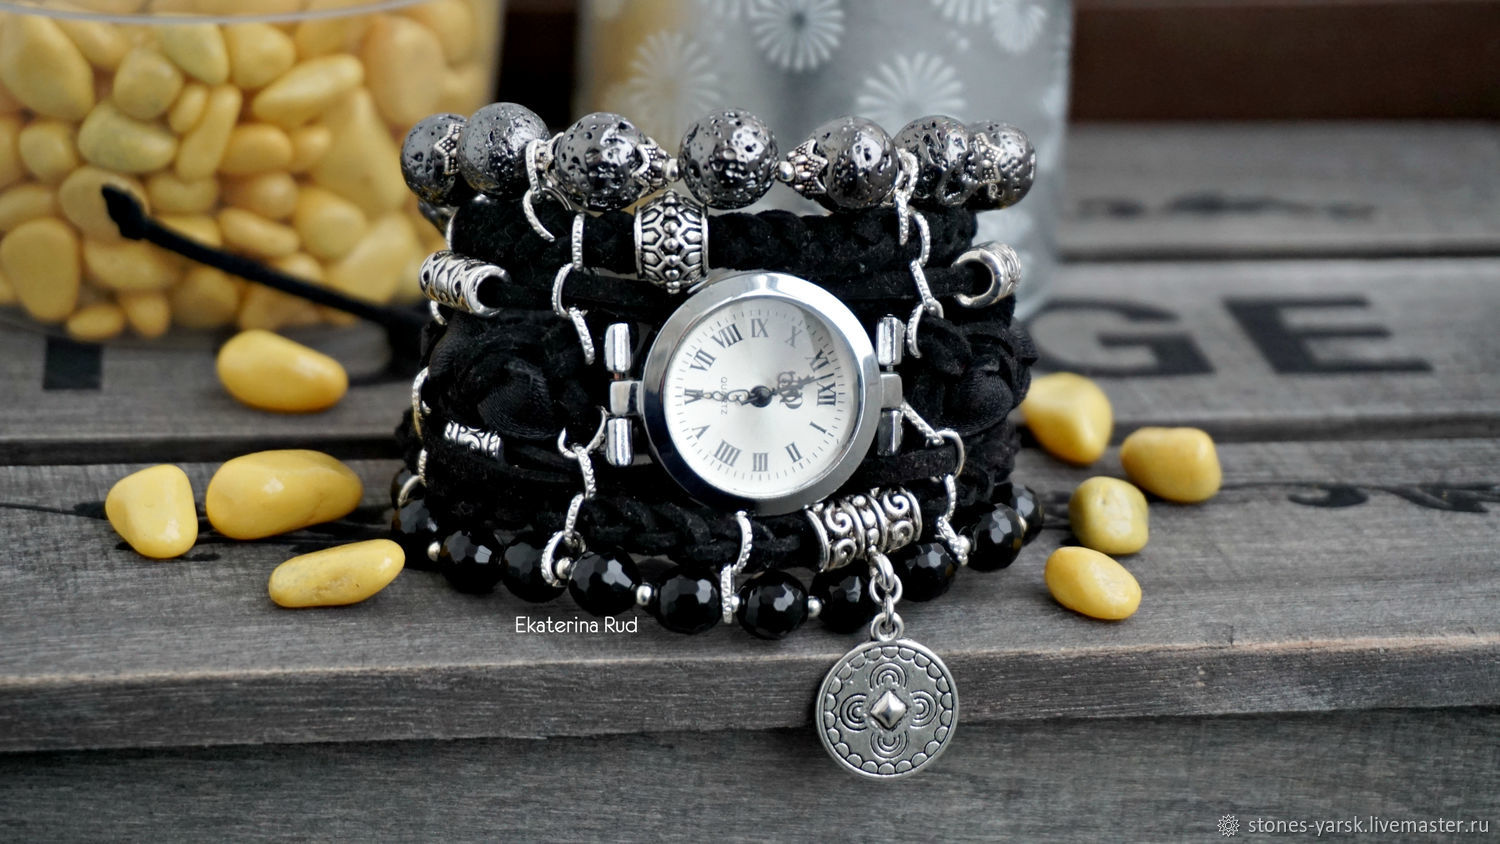 Women's black wrist watch with stones ' Business time', Watches, Moscow,  Фото №1